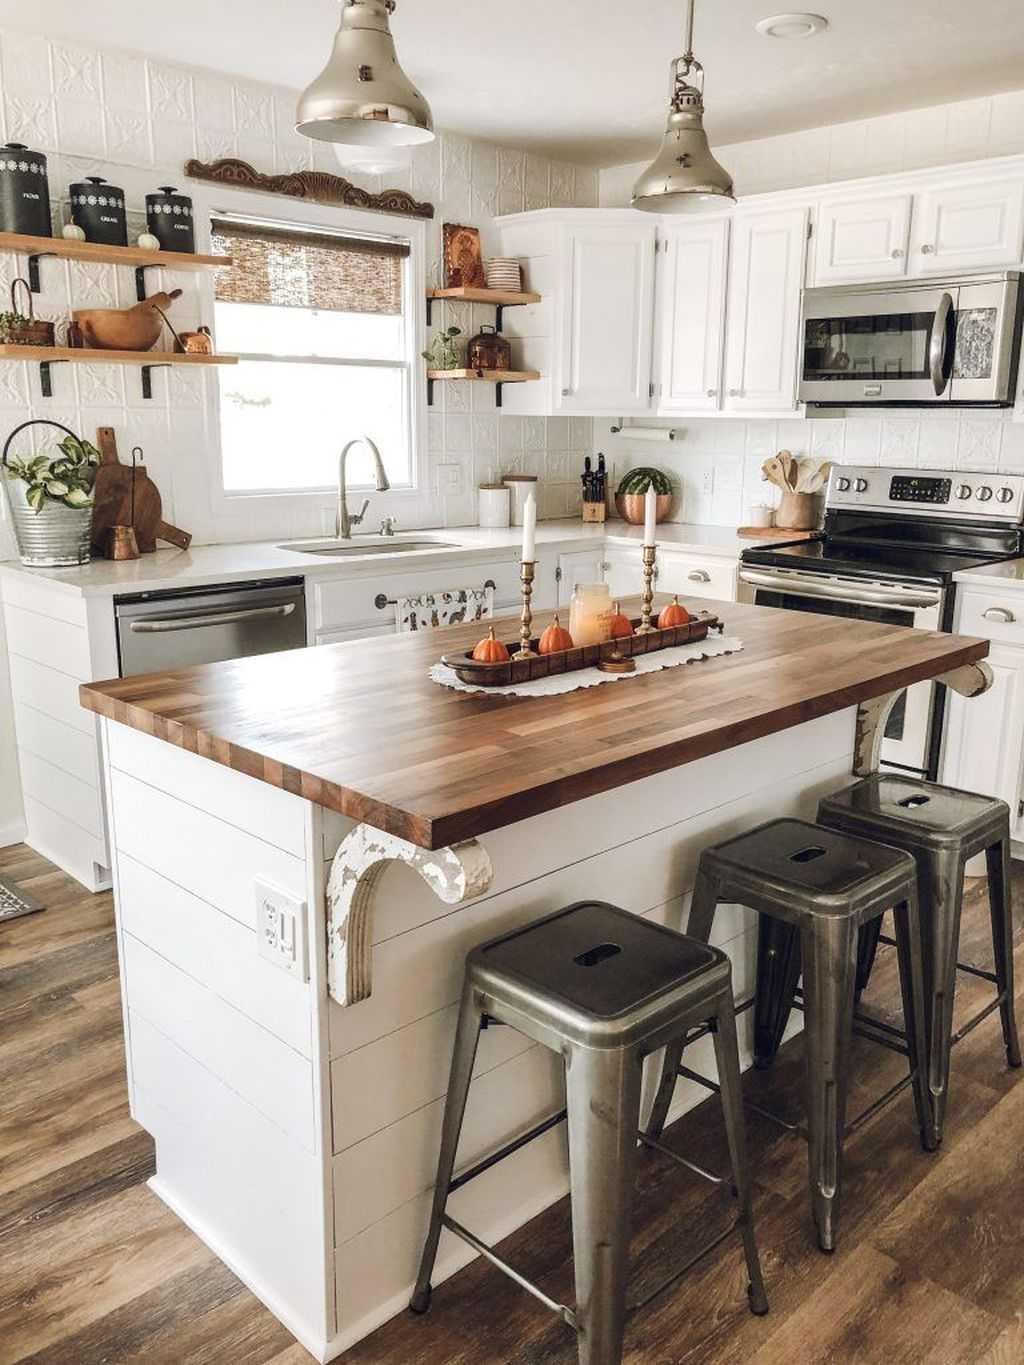 The Best Ideas To Decorate Interior Design With Farmhouse Style 33